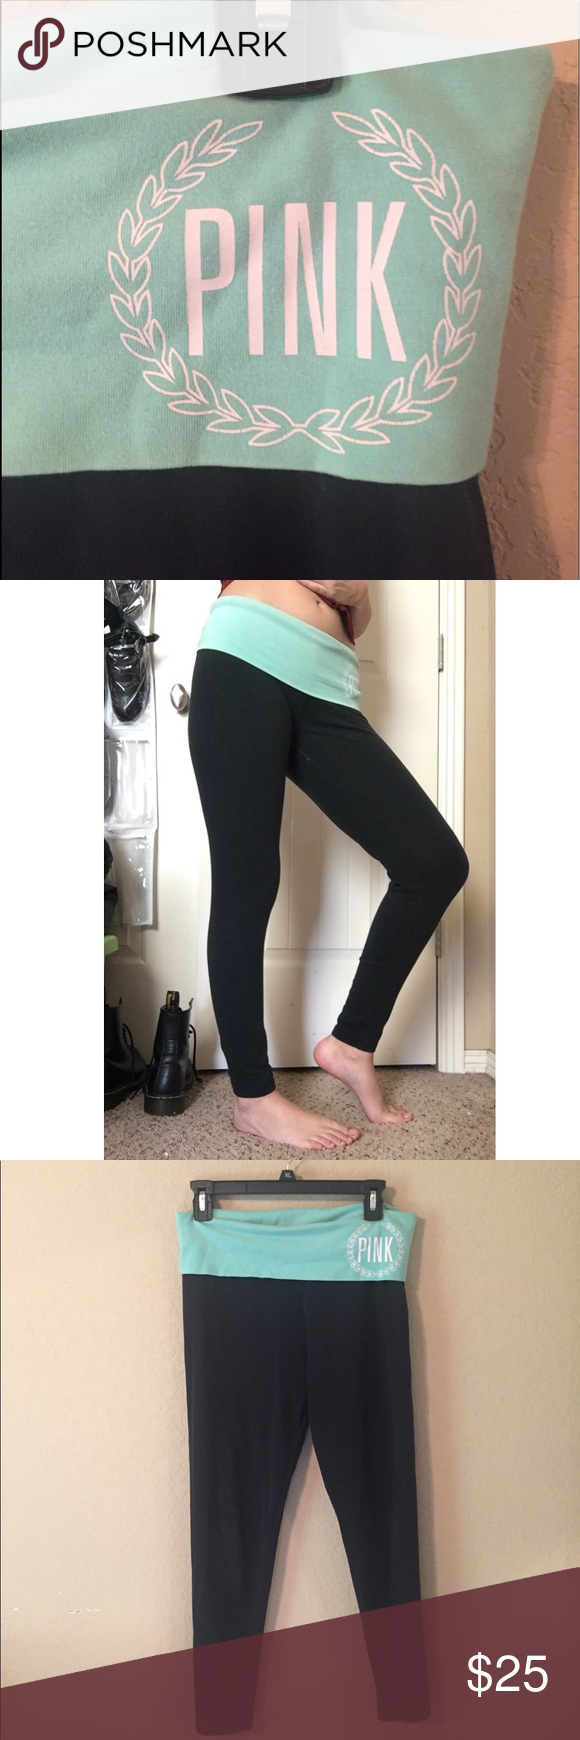 ffccfb0849ce6 NEW-Victoria's Secret Yoga Pants- Victoria's Secret Yoga Pants! Yoga ...